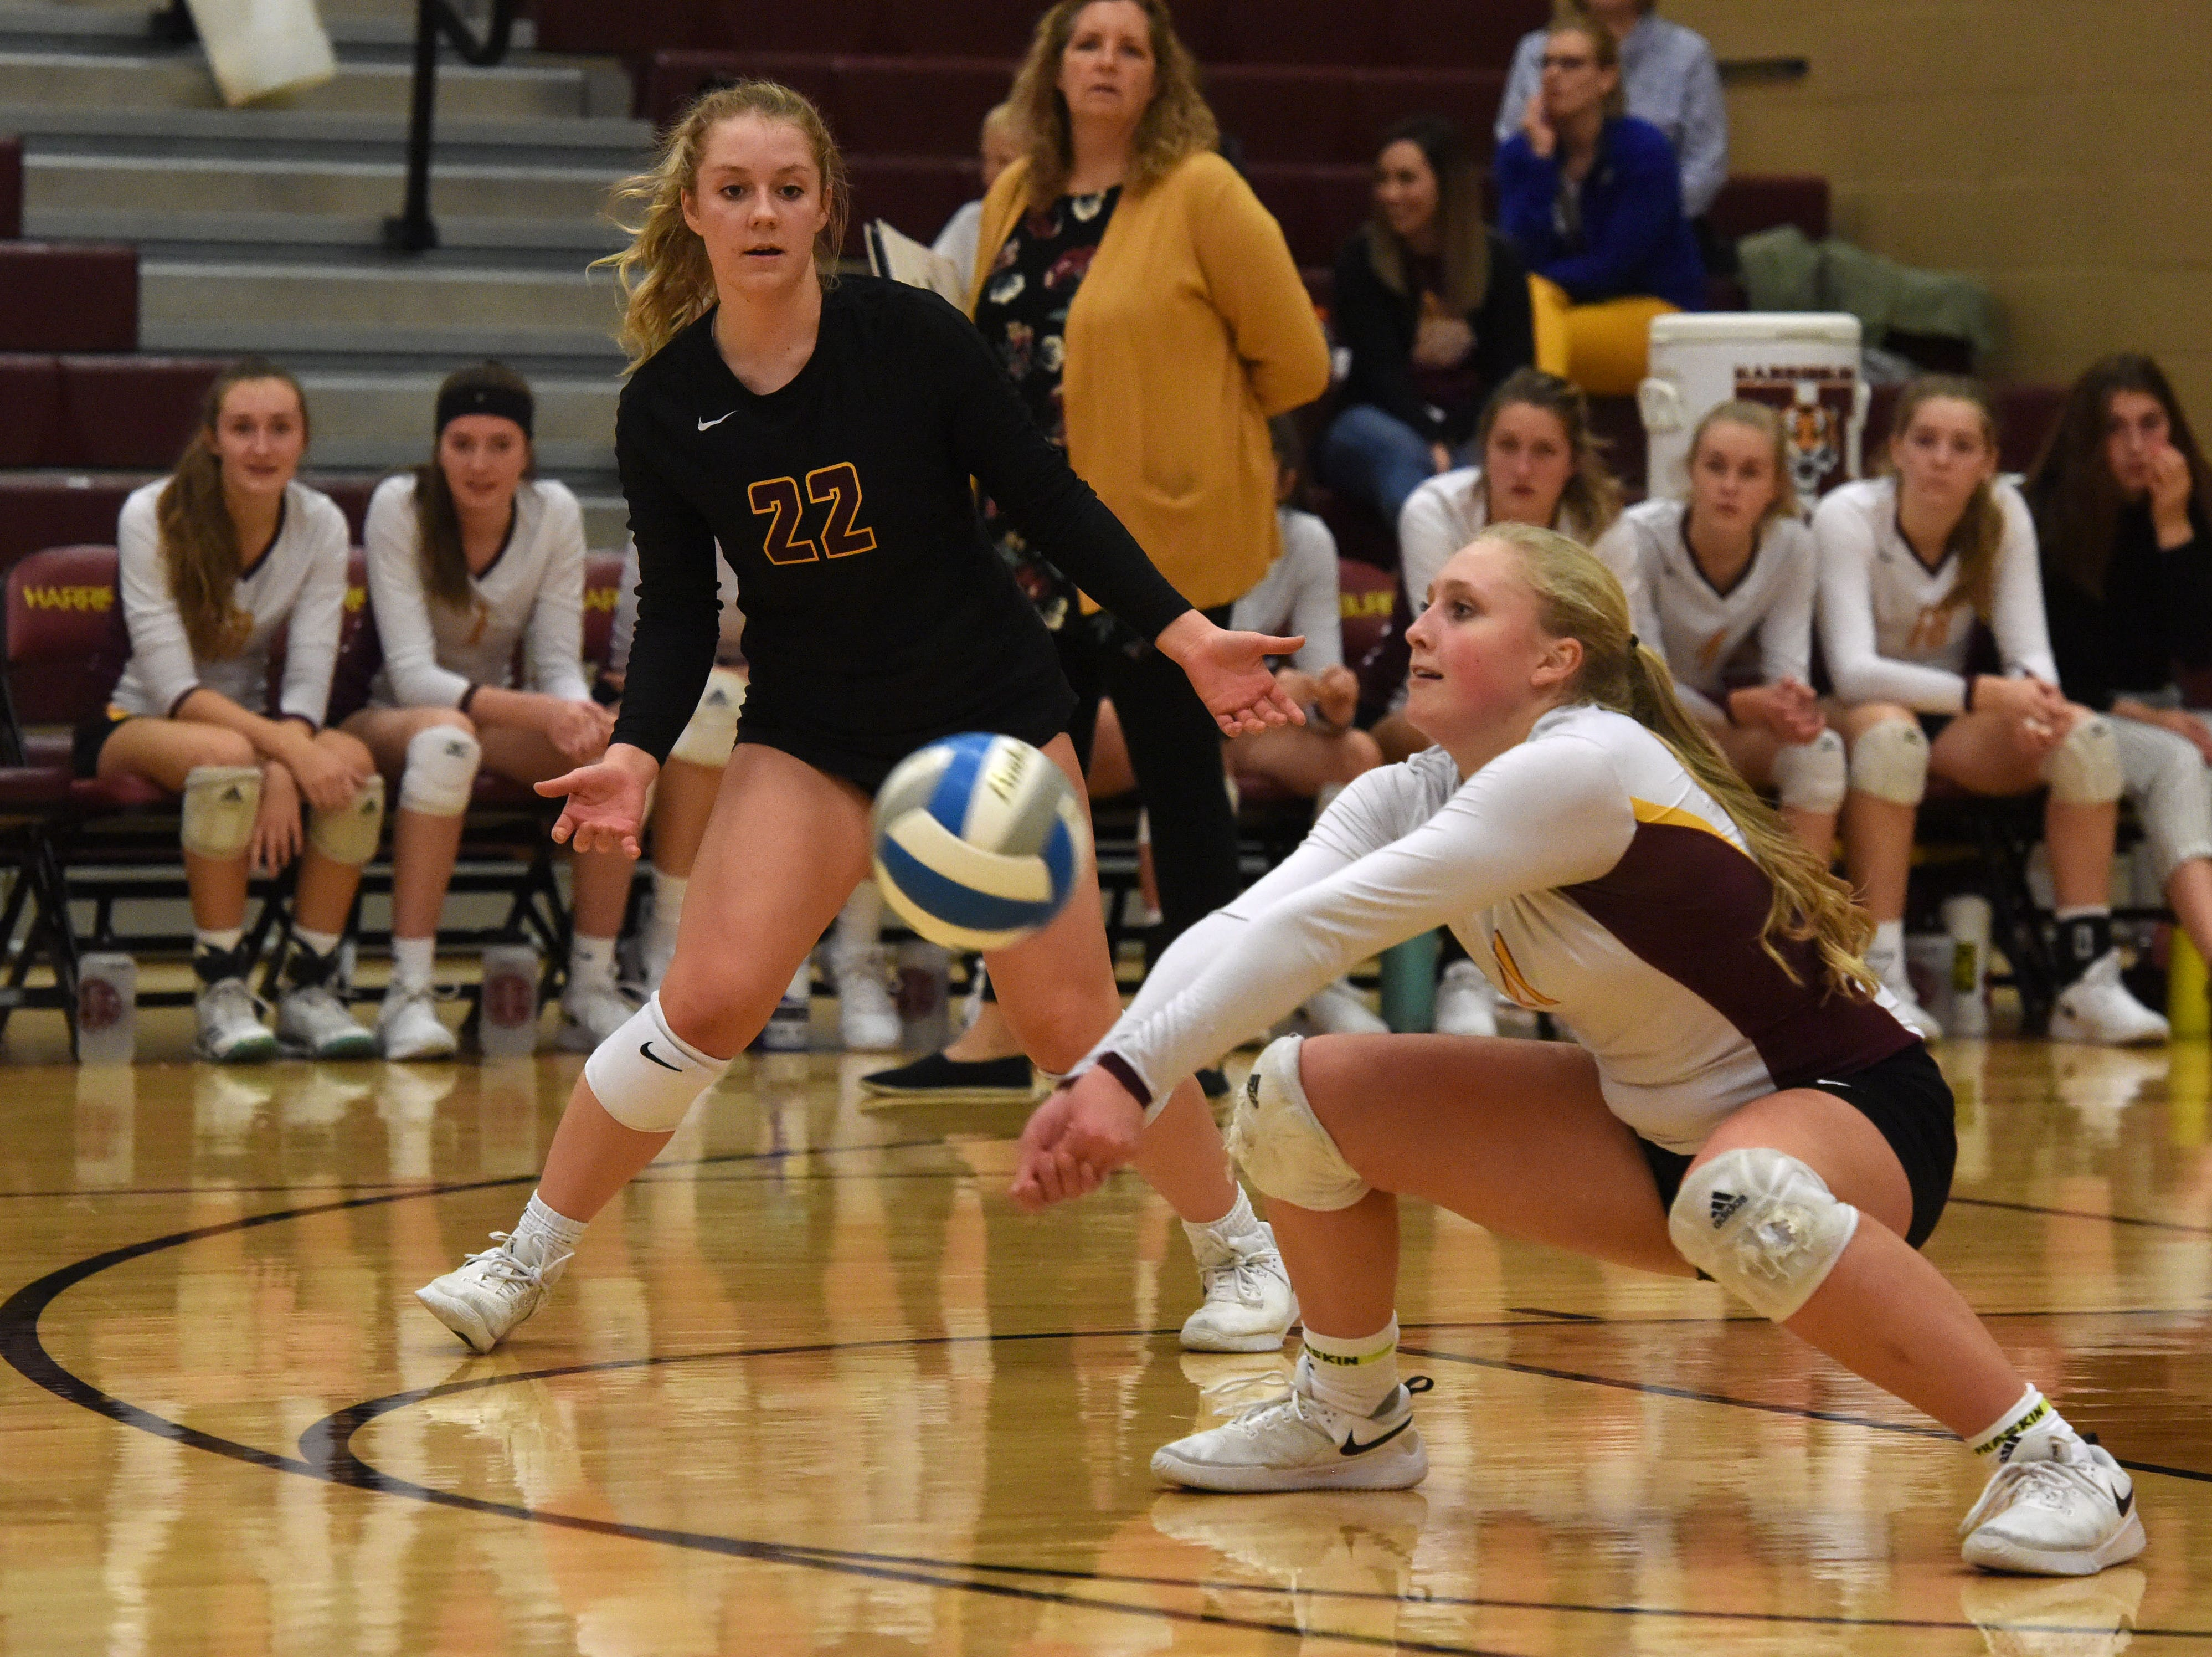 Harrisburg's Abby Meister (11) bumps the ball during a match against Brookings Tuesday, Oct. 30, 2018 in Harrisburg, S.D.